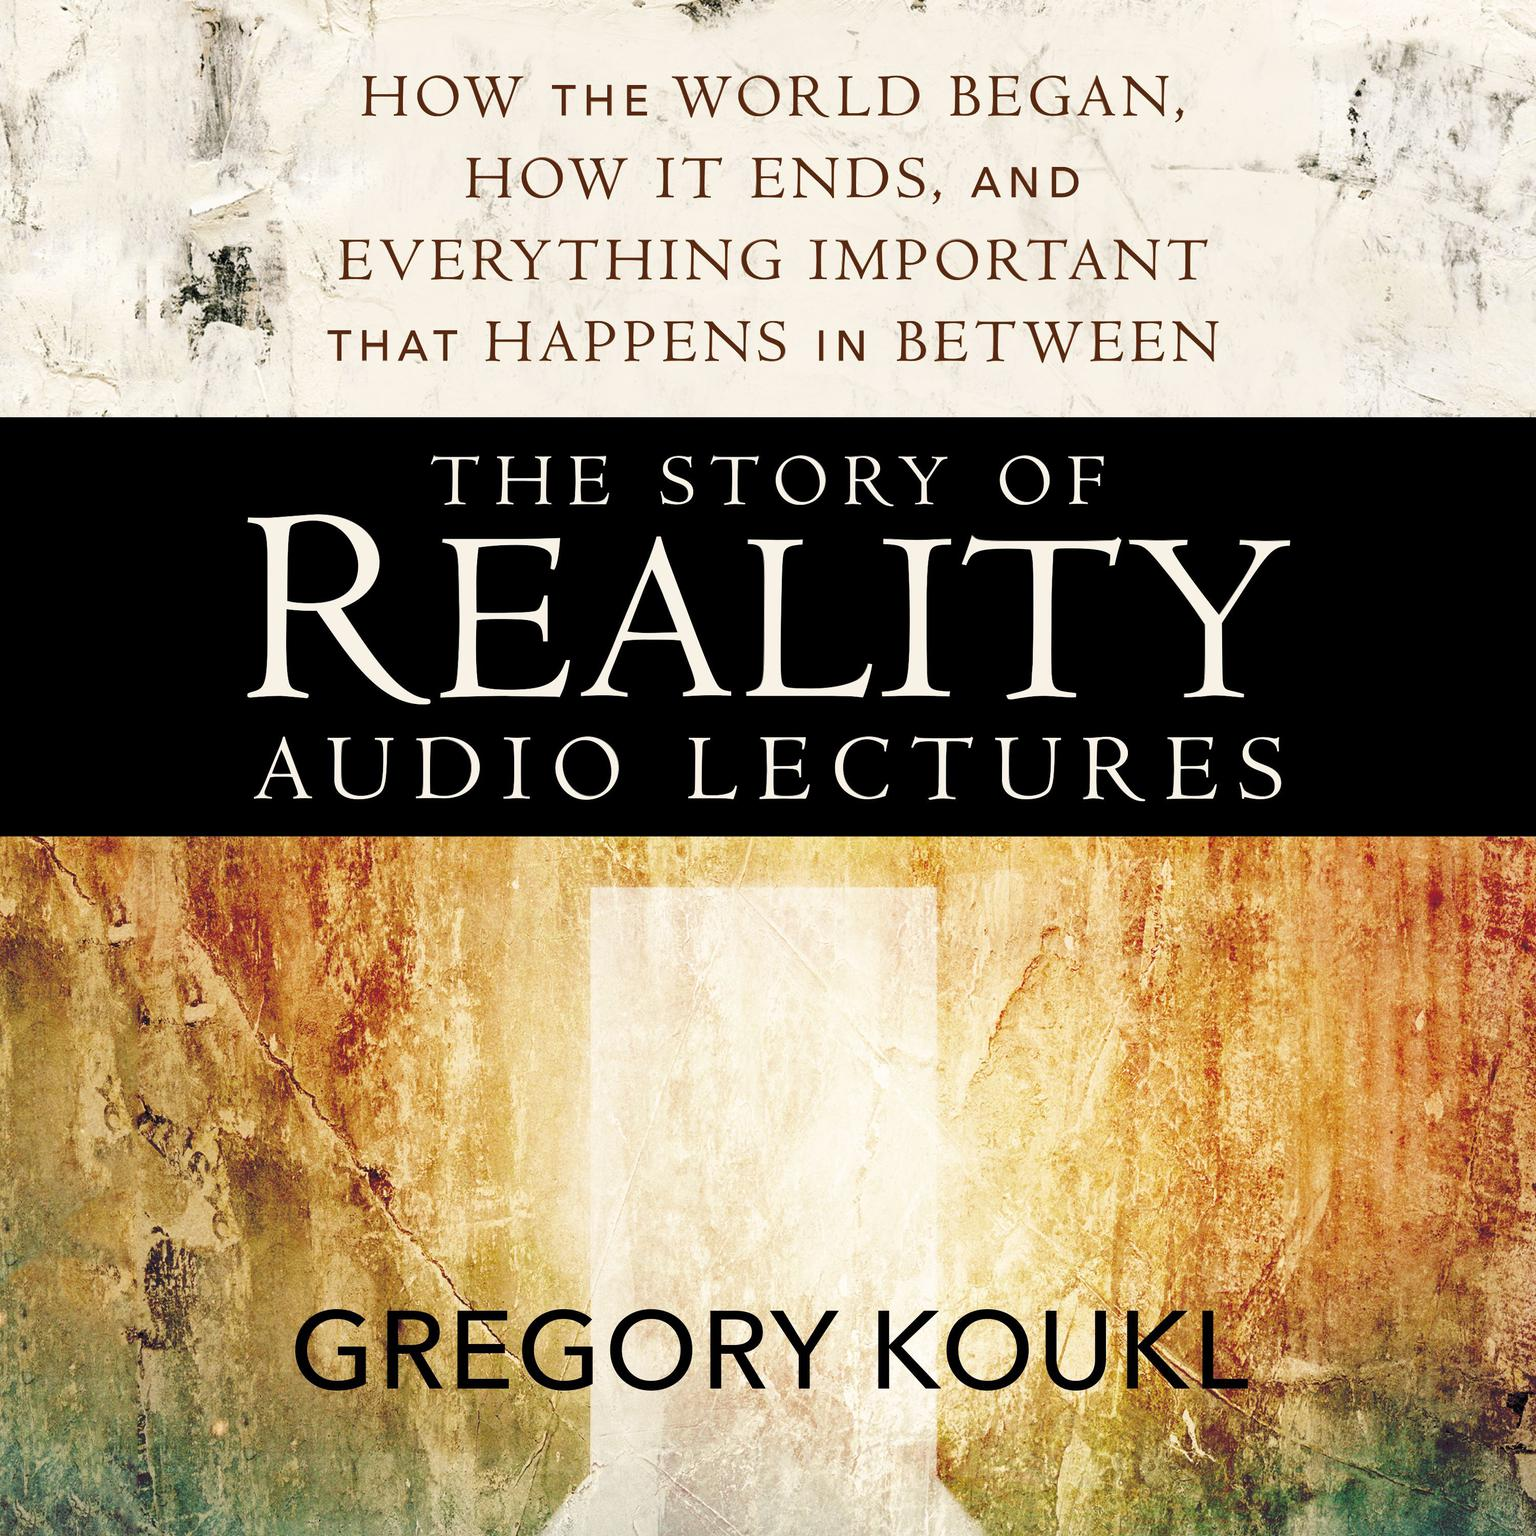 Printable The Story of Reality: Audio Lectures: How the World Began, How it Ends, and Everything Important that Happens in Between Audiobook Cover Art